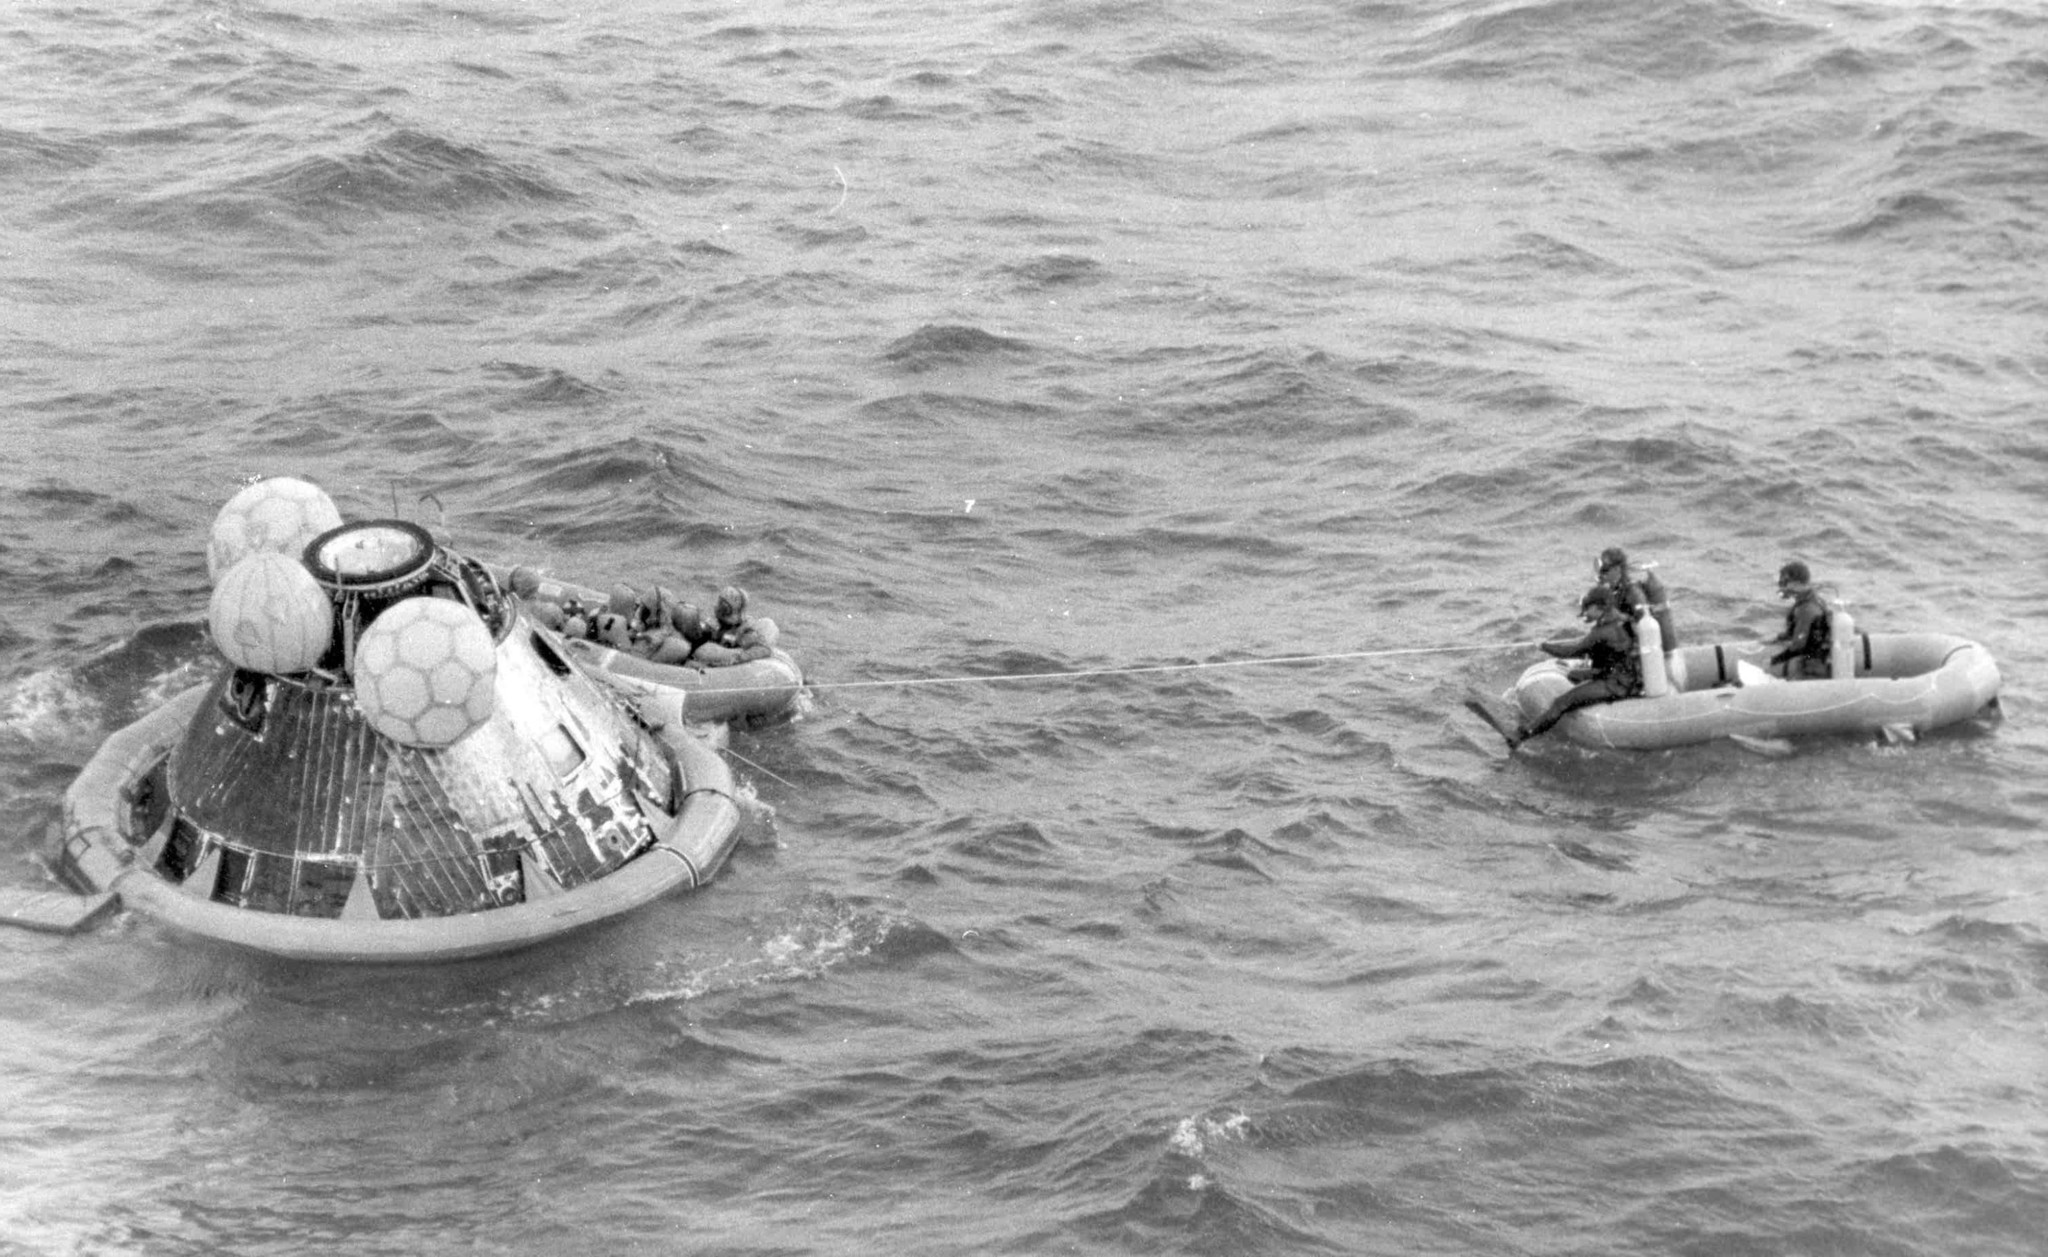 apollo 11 capsule going on tour after decades in dc